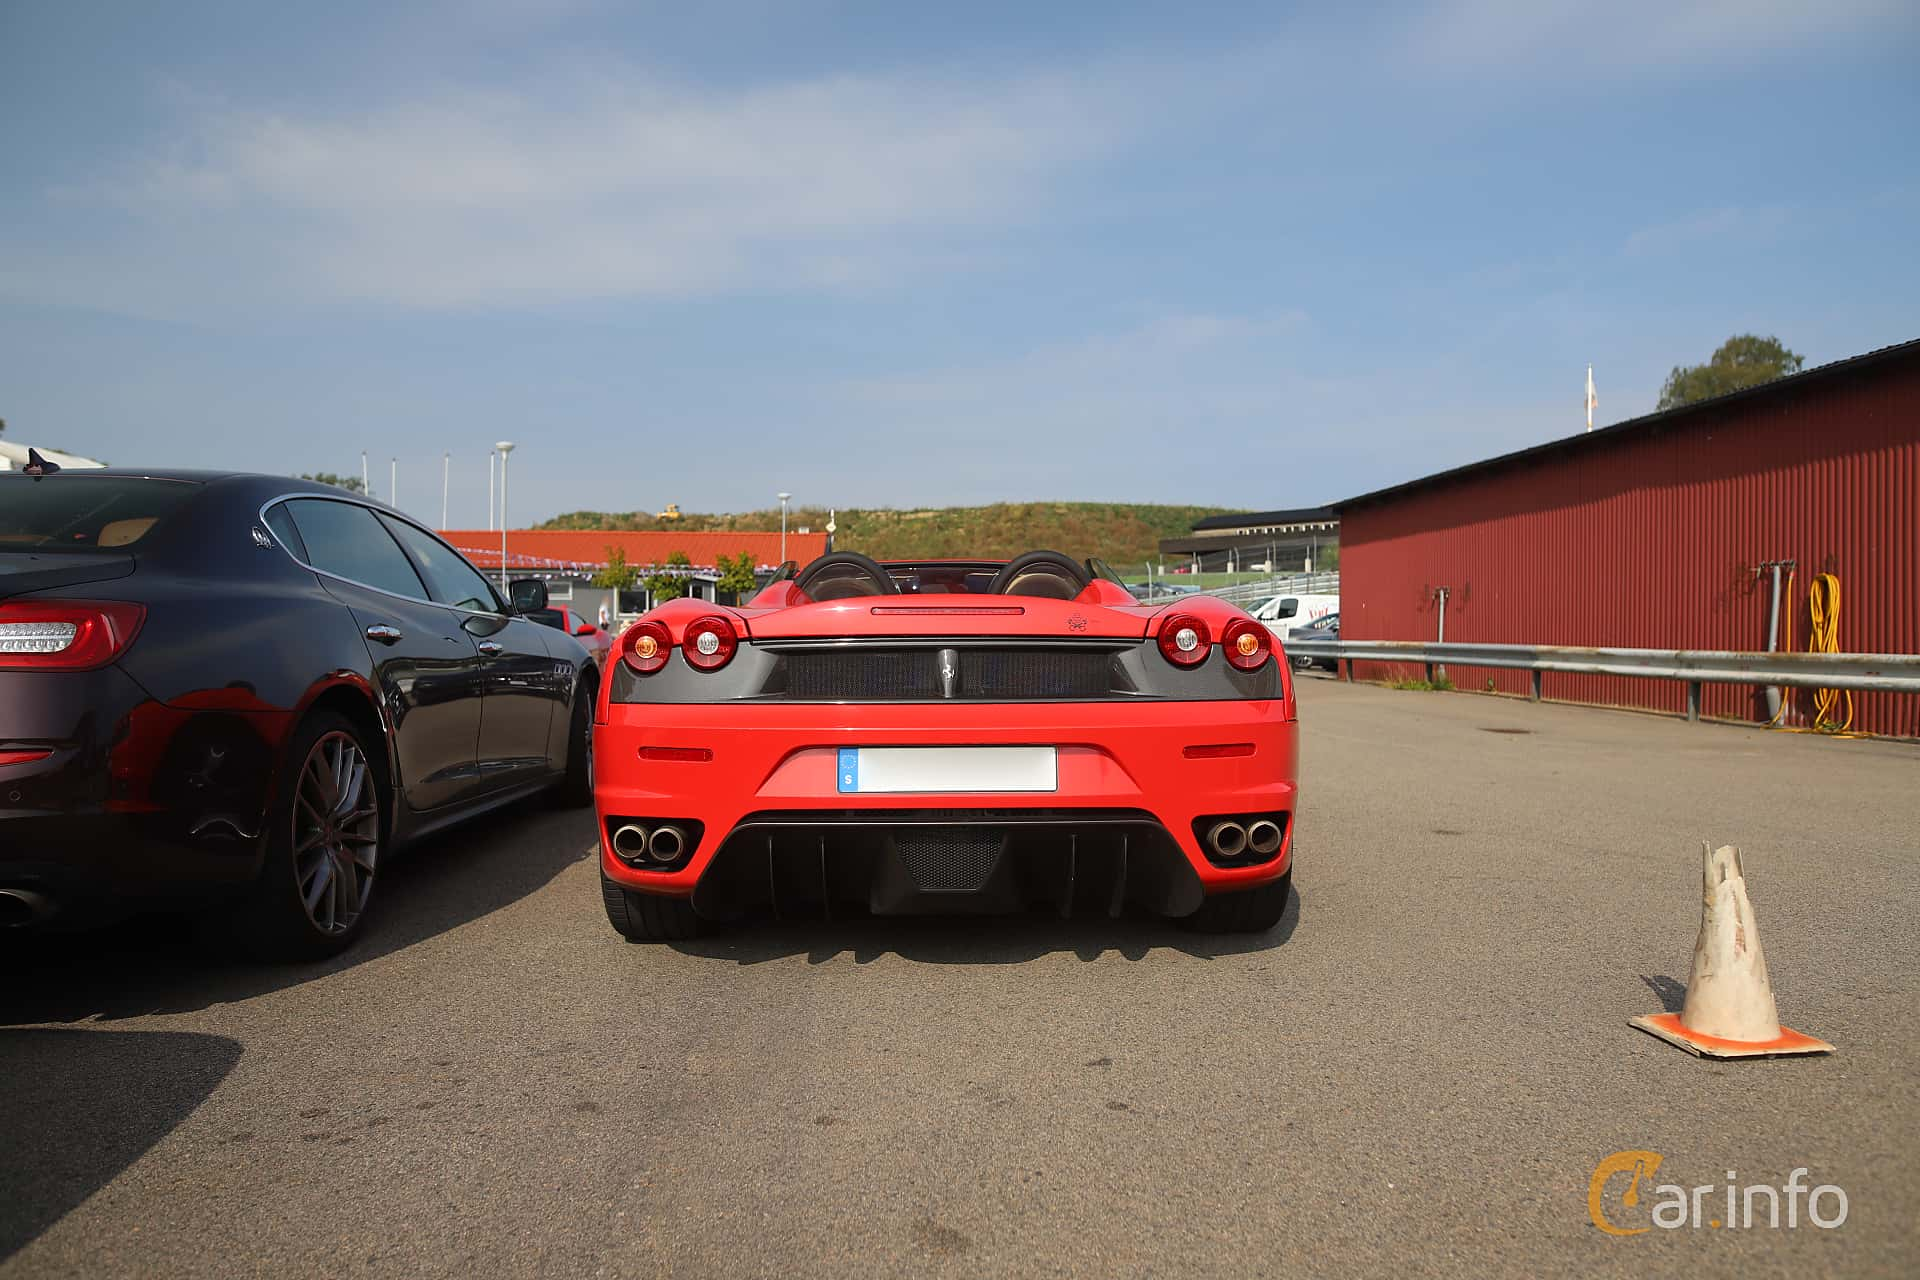 Ferrari F430 Spider 4.3 V8 Sequential, 490hp, 2008 at Autoropa Racing day Knutstorp 2019